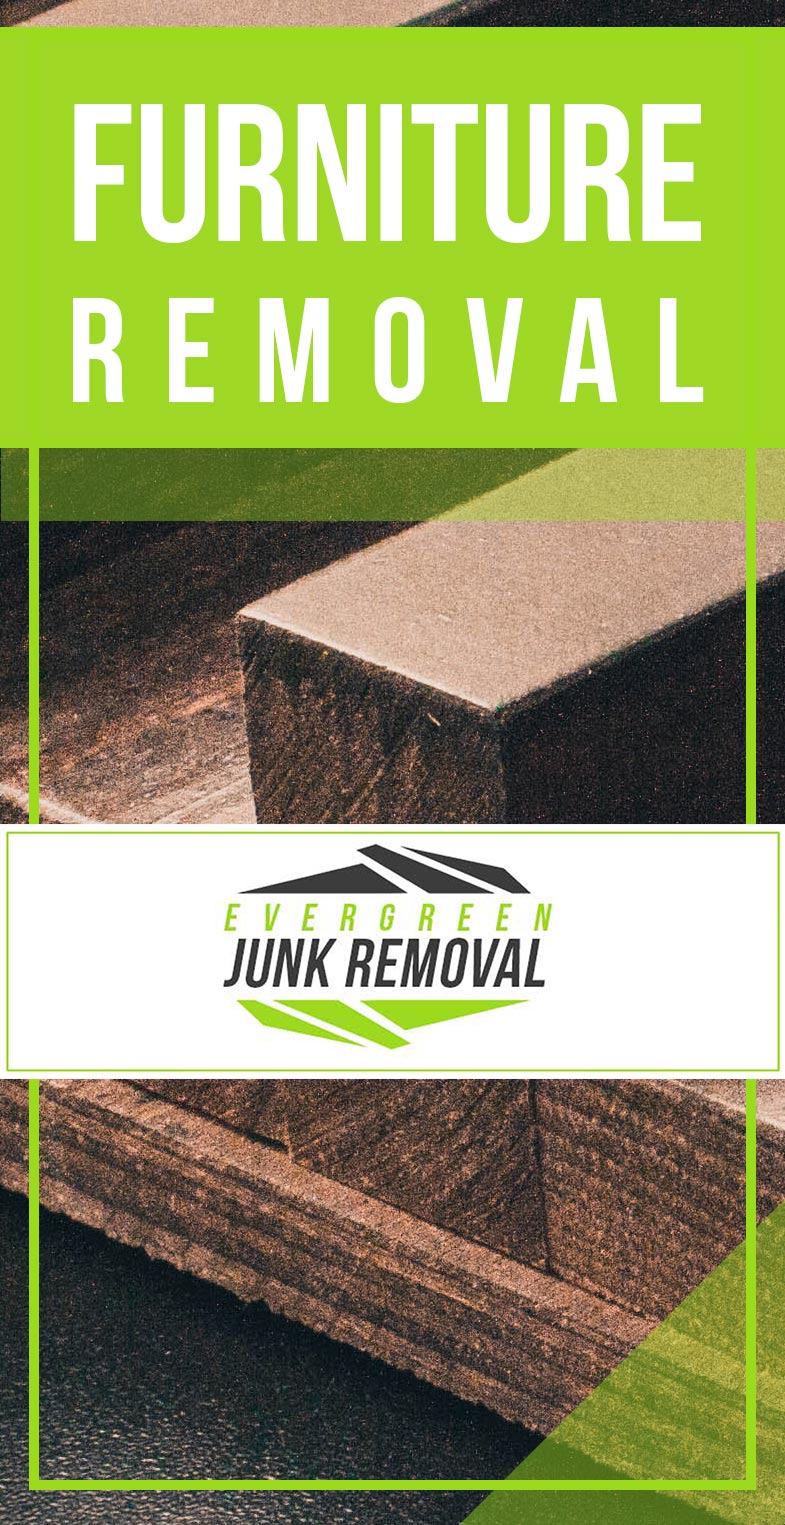 Junk Removal Boynton Beach Furniture Removal